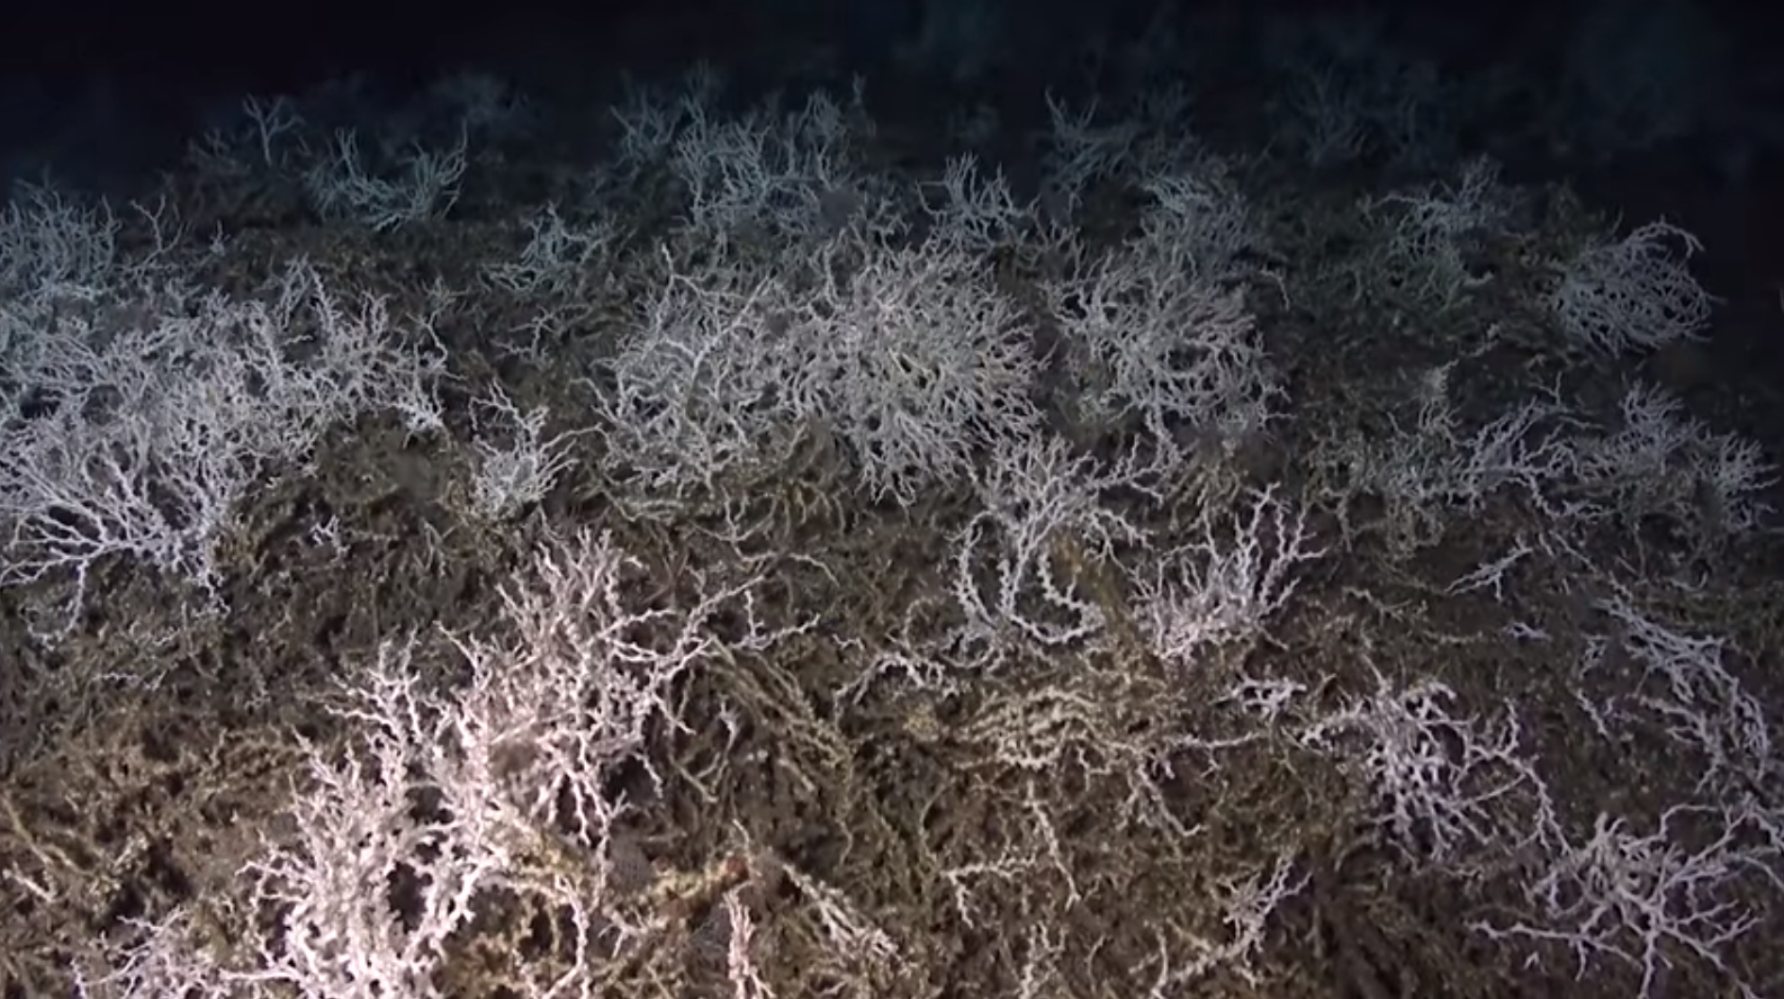 Team of researchers discover 85-mile stretch of cold water coral reef off the coast of South Carolina